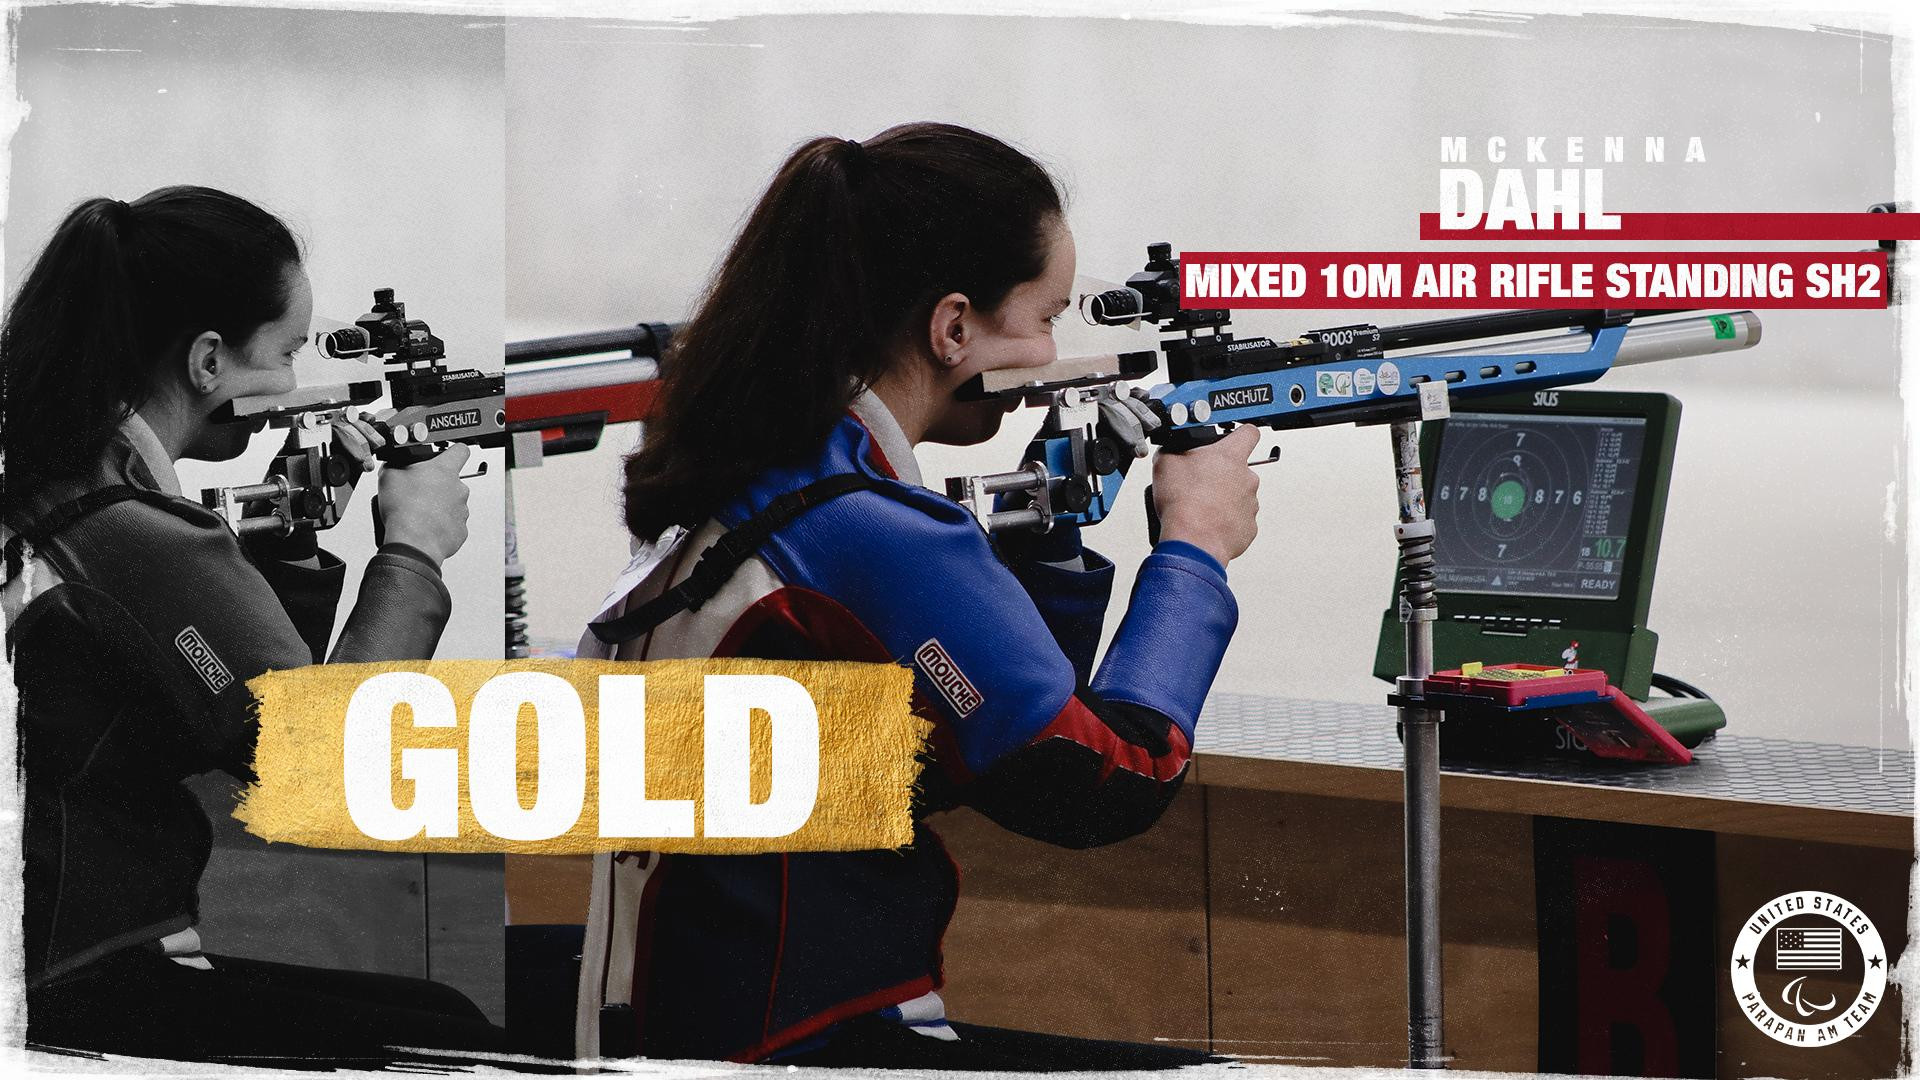 Golden girl. 👑  @KennaDahl is your Parapan Am CHAMPION in the mixed 10m air rifle standing SH2. https://t.co/O2FXlViNmM